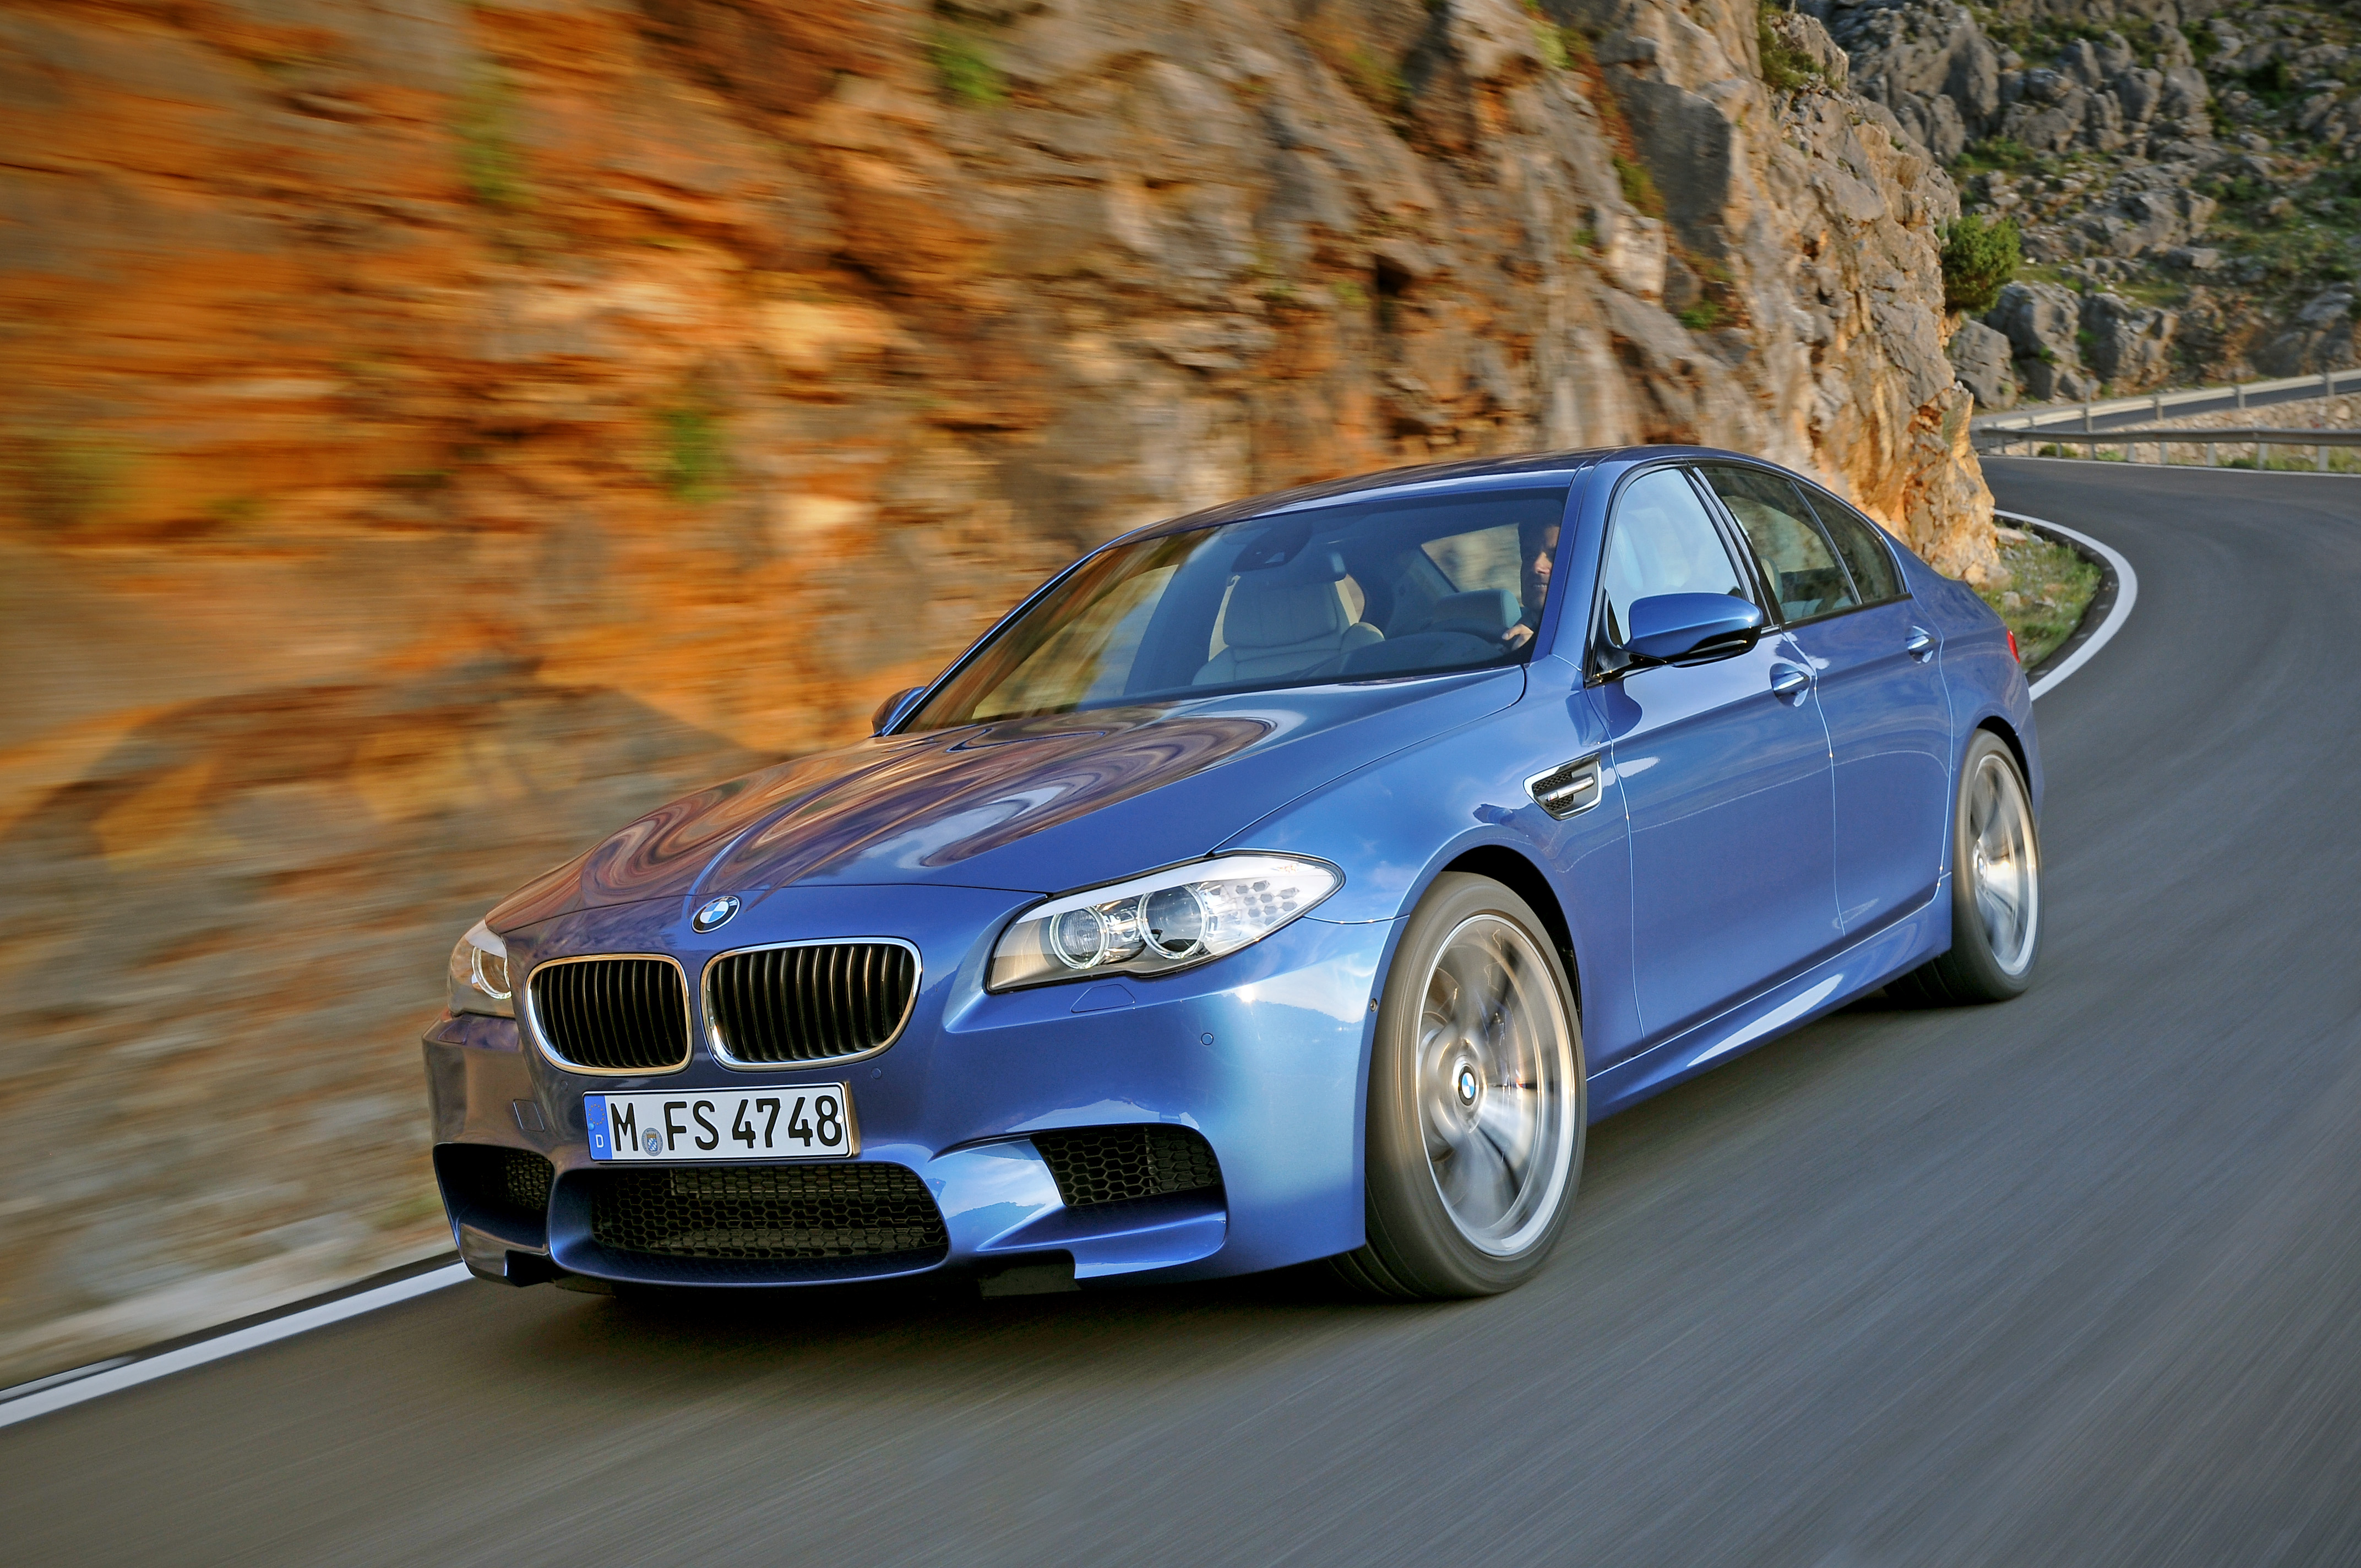 OFFICIAL BMW M5 Production pics high resolution!-p90078299.jpg